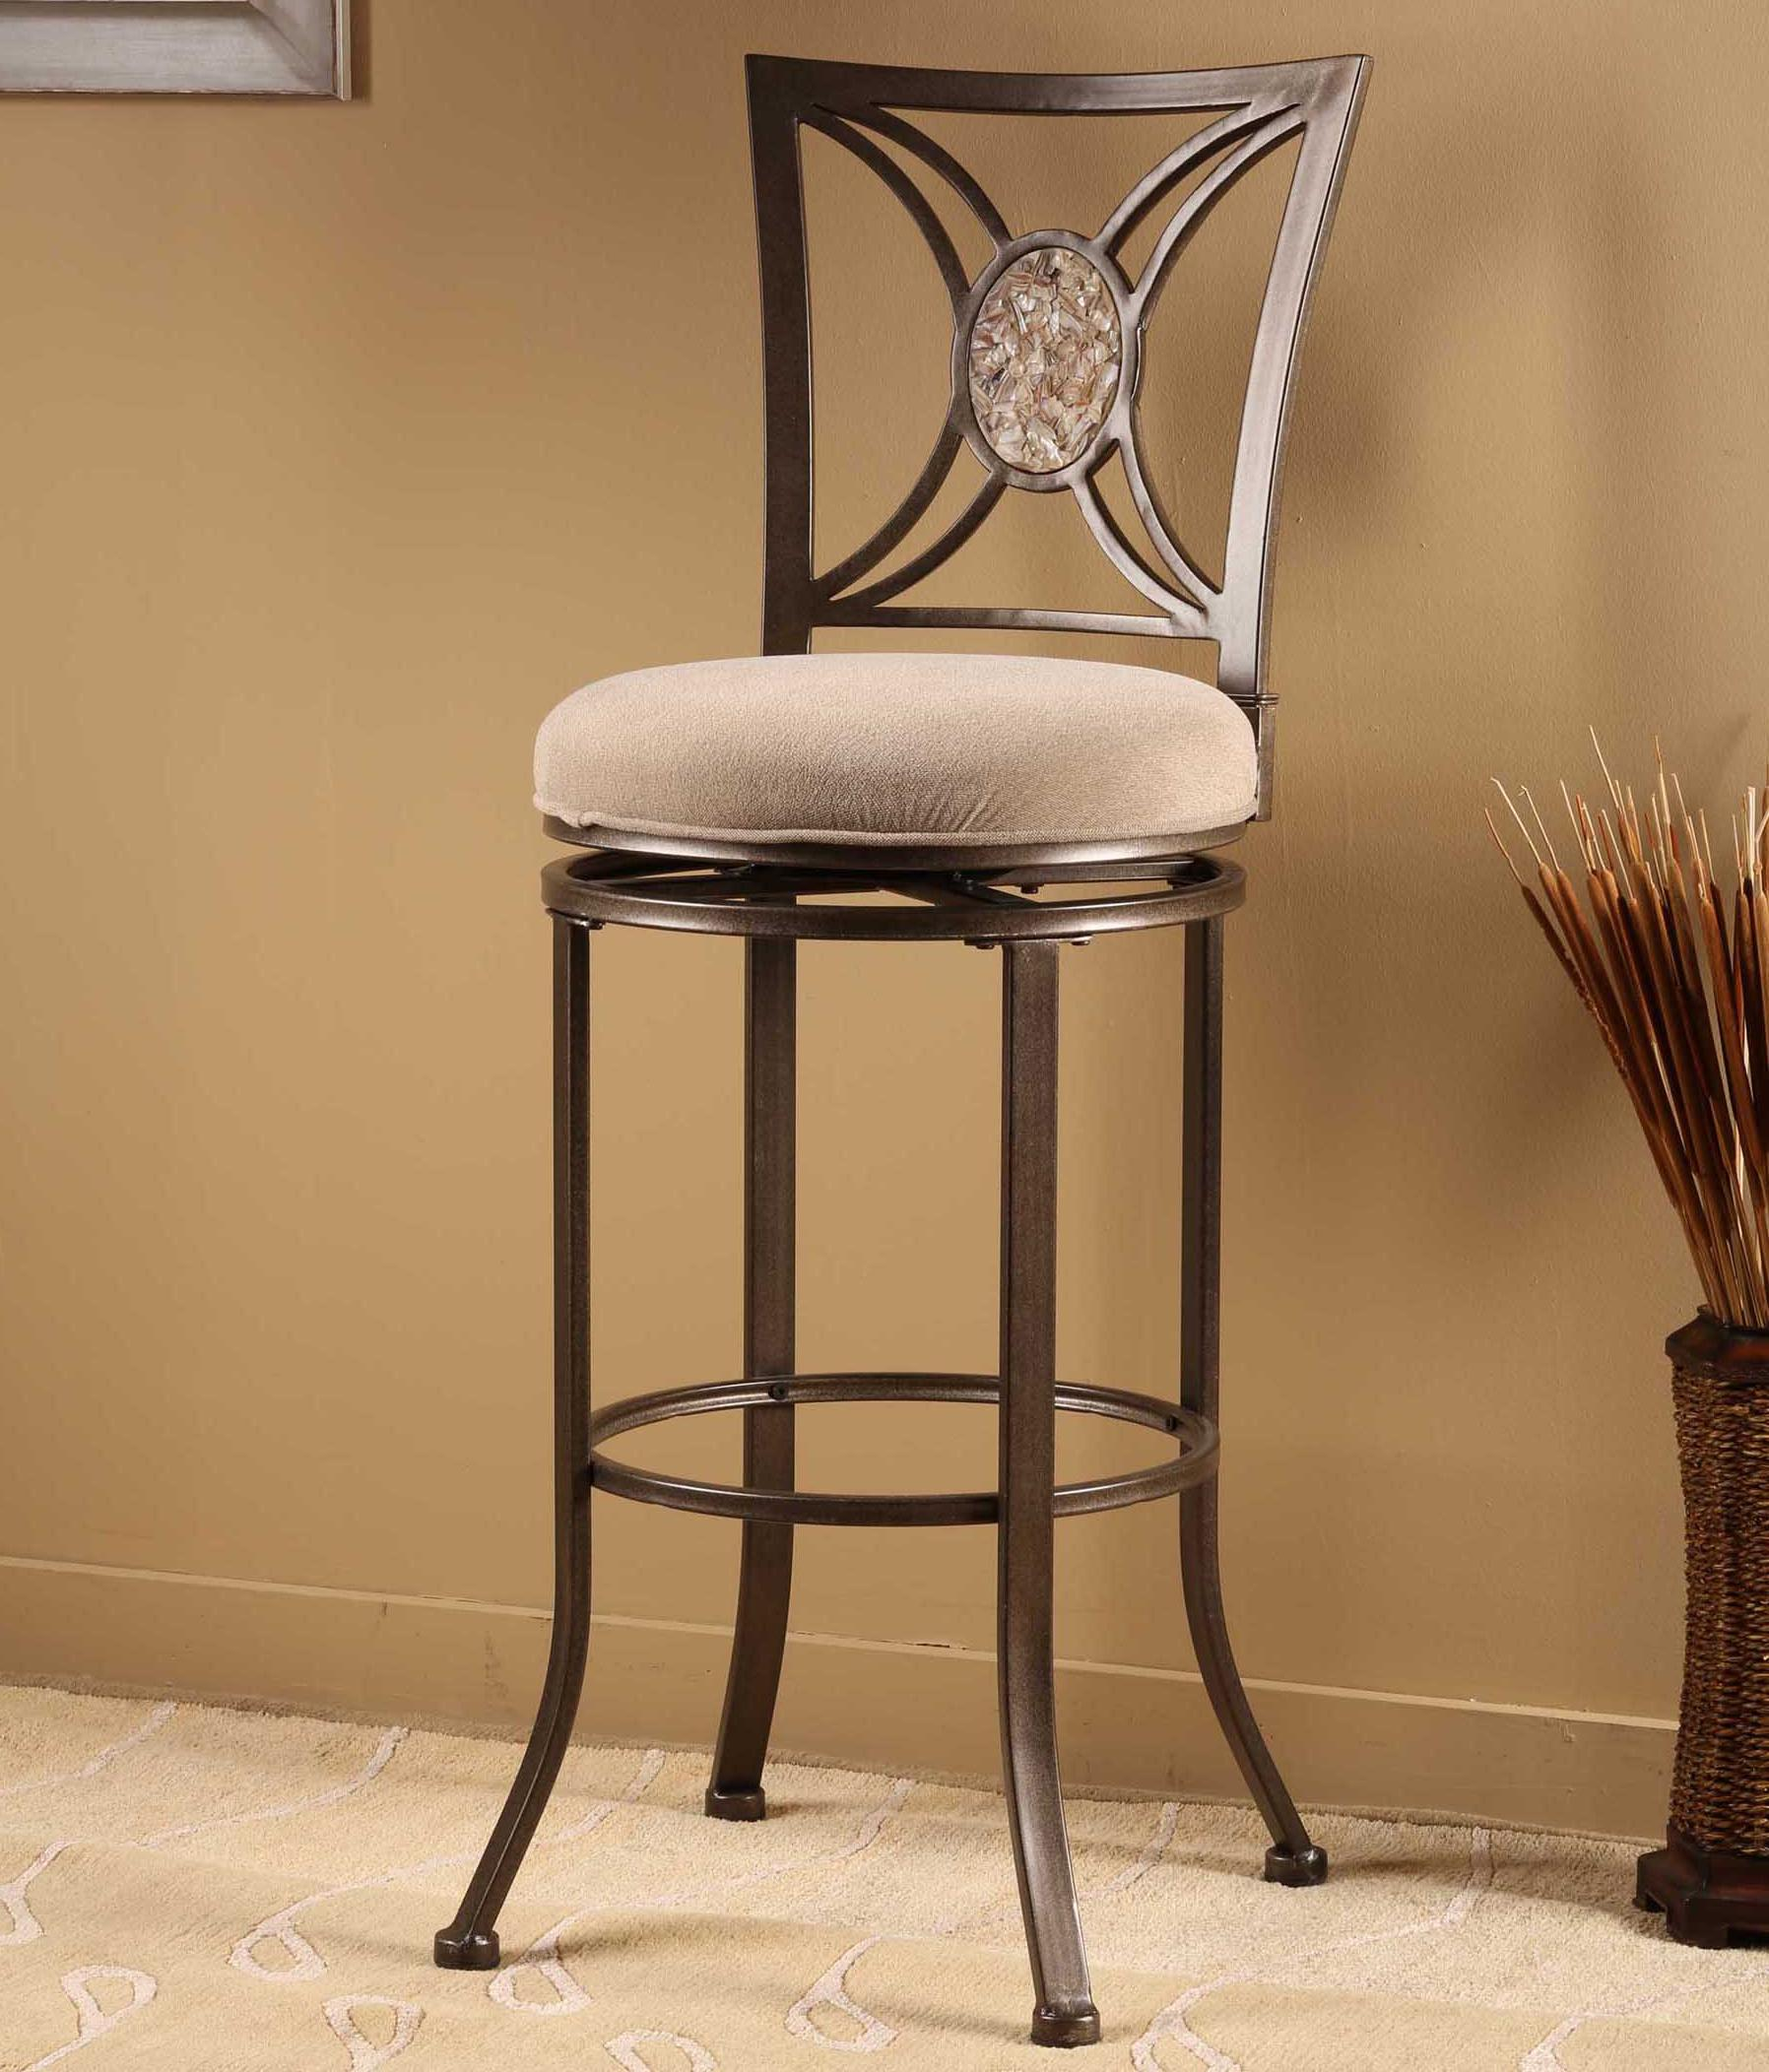 Hillsdale Metal Stools Rowan Swivel Bar Stool  - Item Number: 4897-830